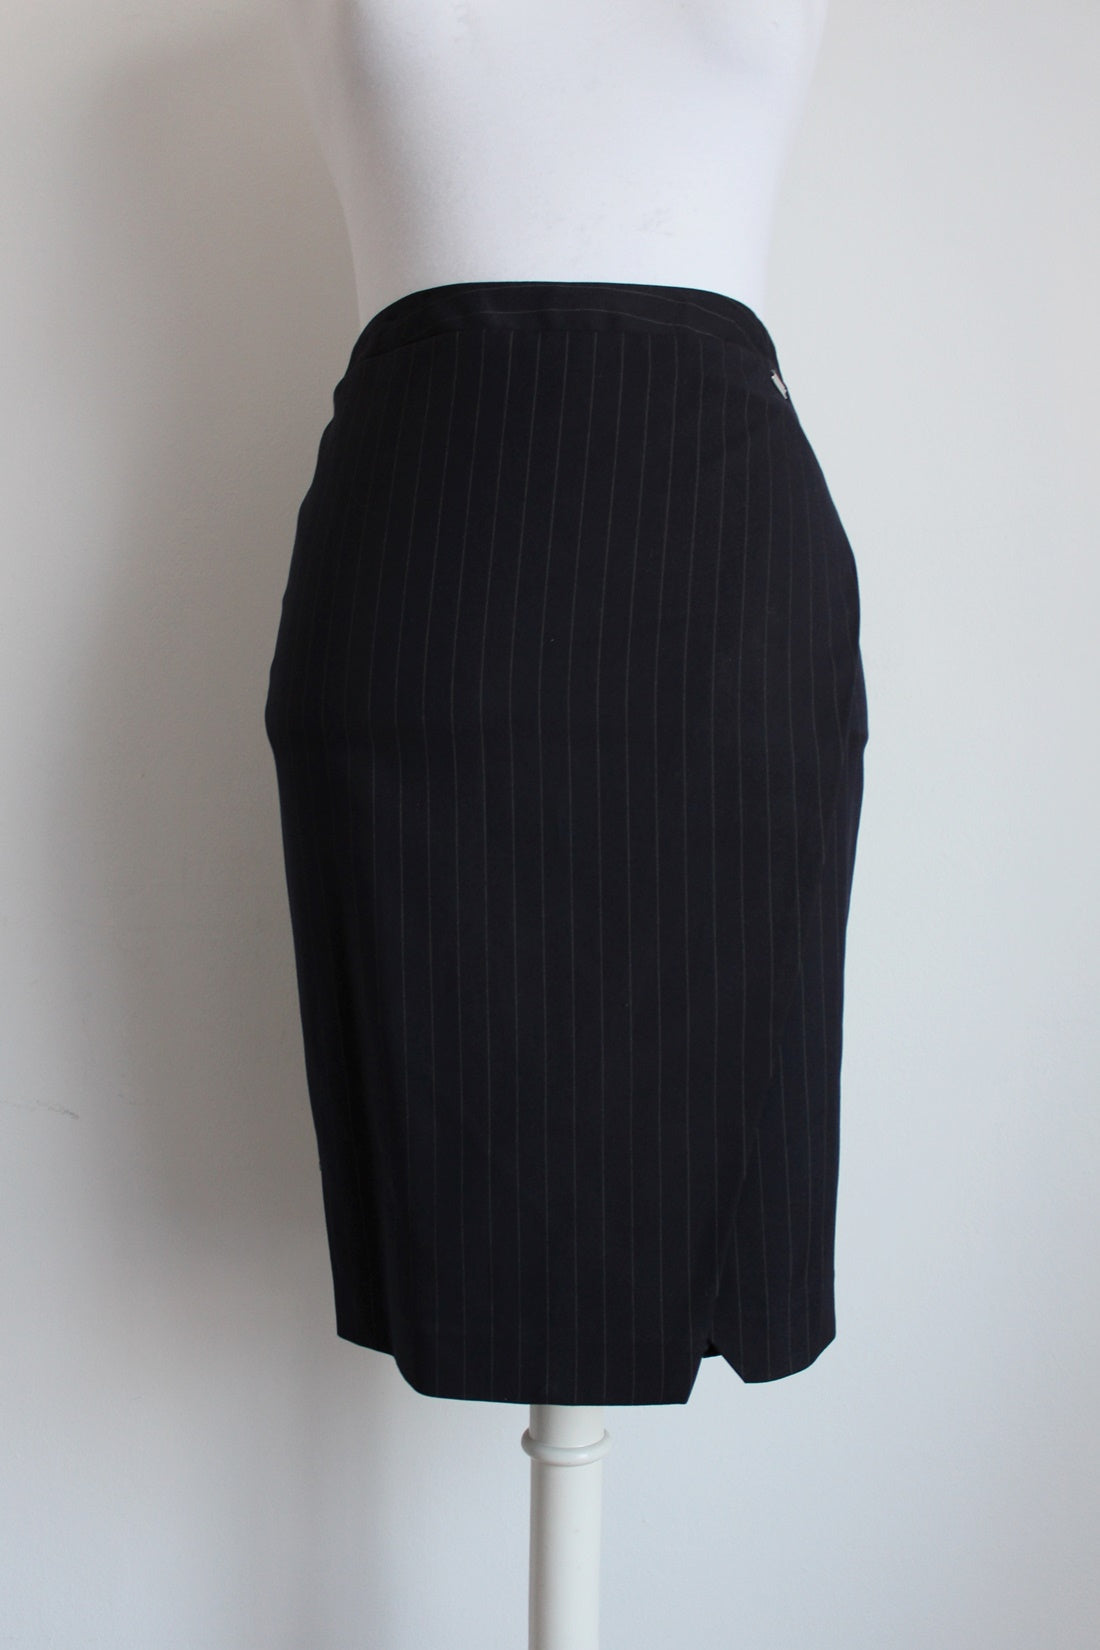 *JENNI BUTTON* DESIGNER PINSTRIPE NAVY FITTED SKIRT - SIZE 6